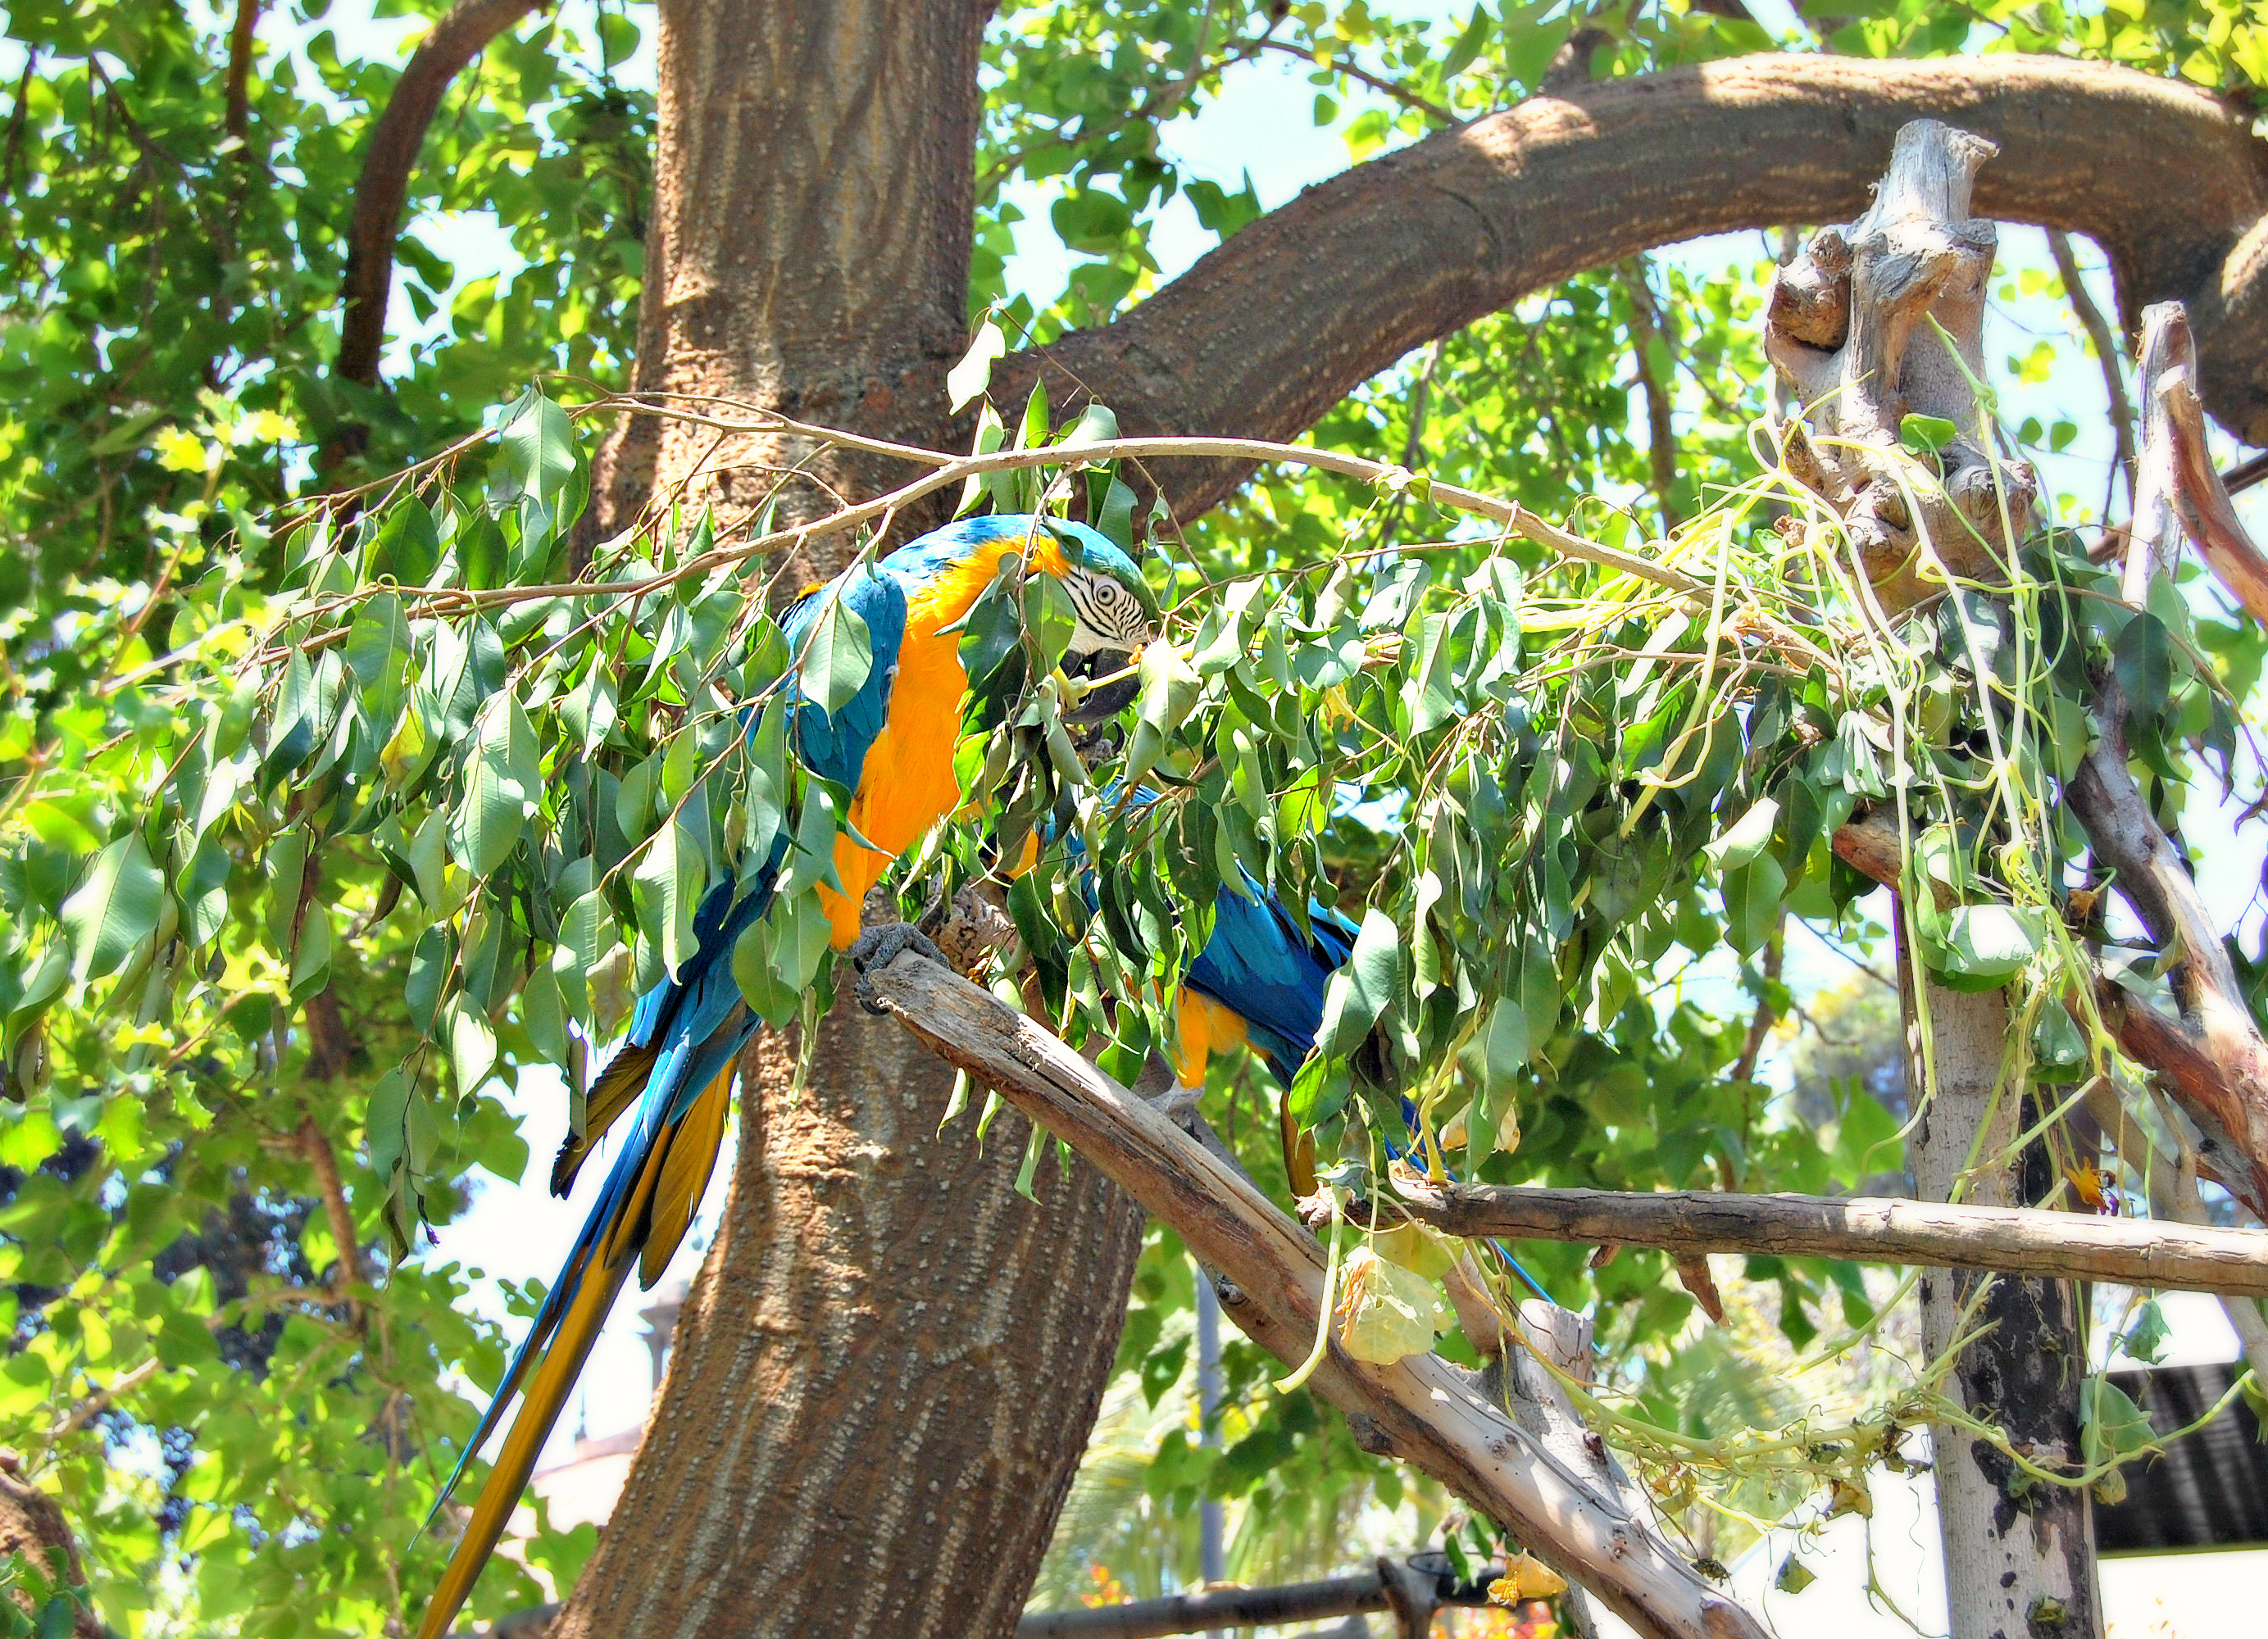 Parrots on display at the San Diego Zoo, California